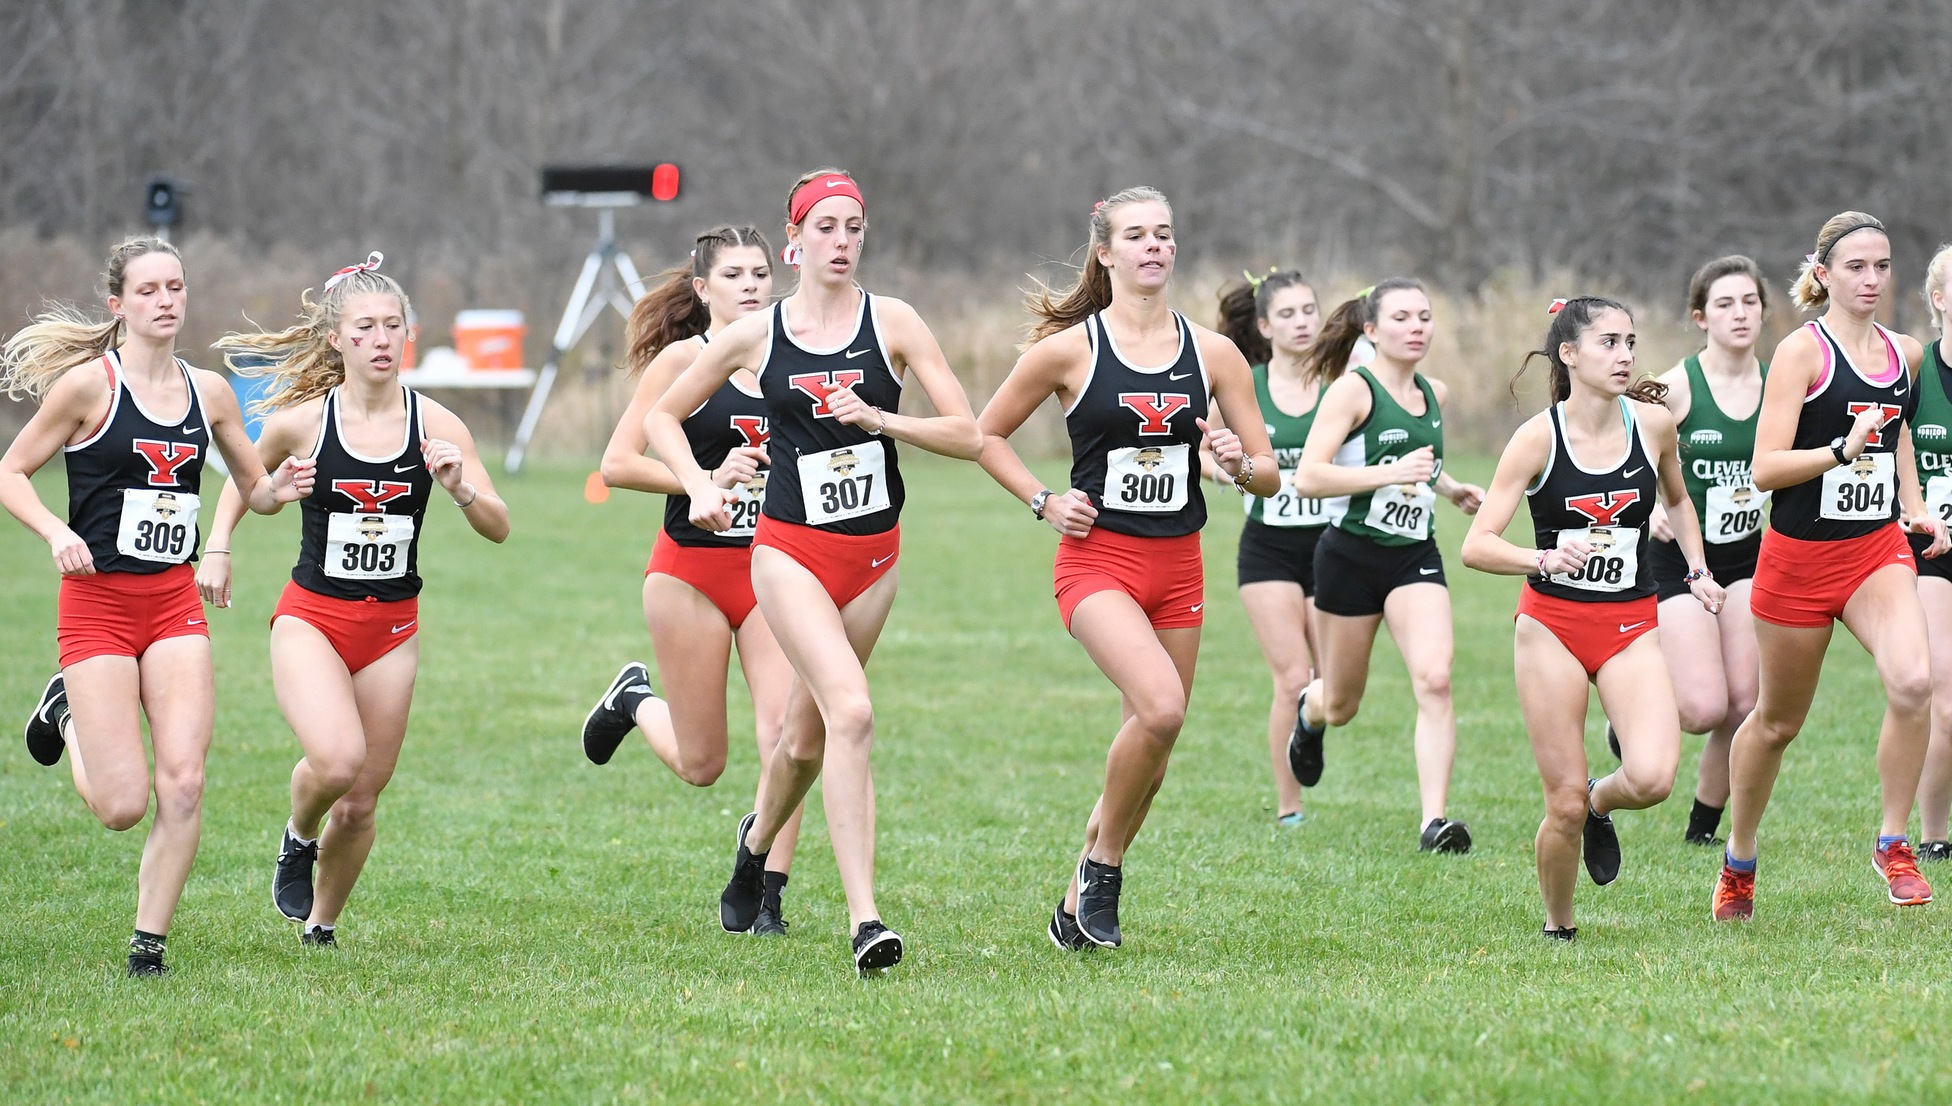 Cross Country Teams Earn All-Academic Honors From USTFCCCA